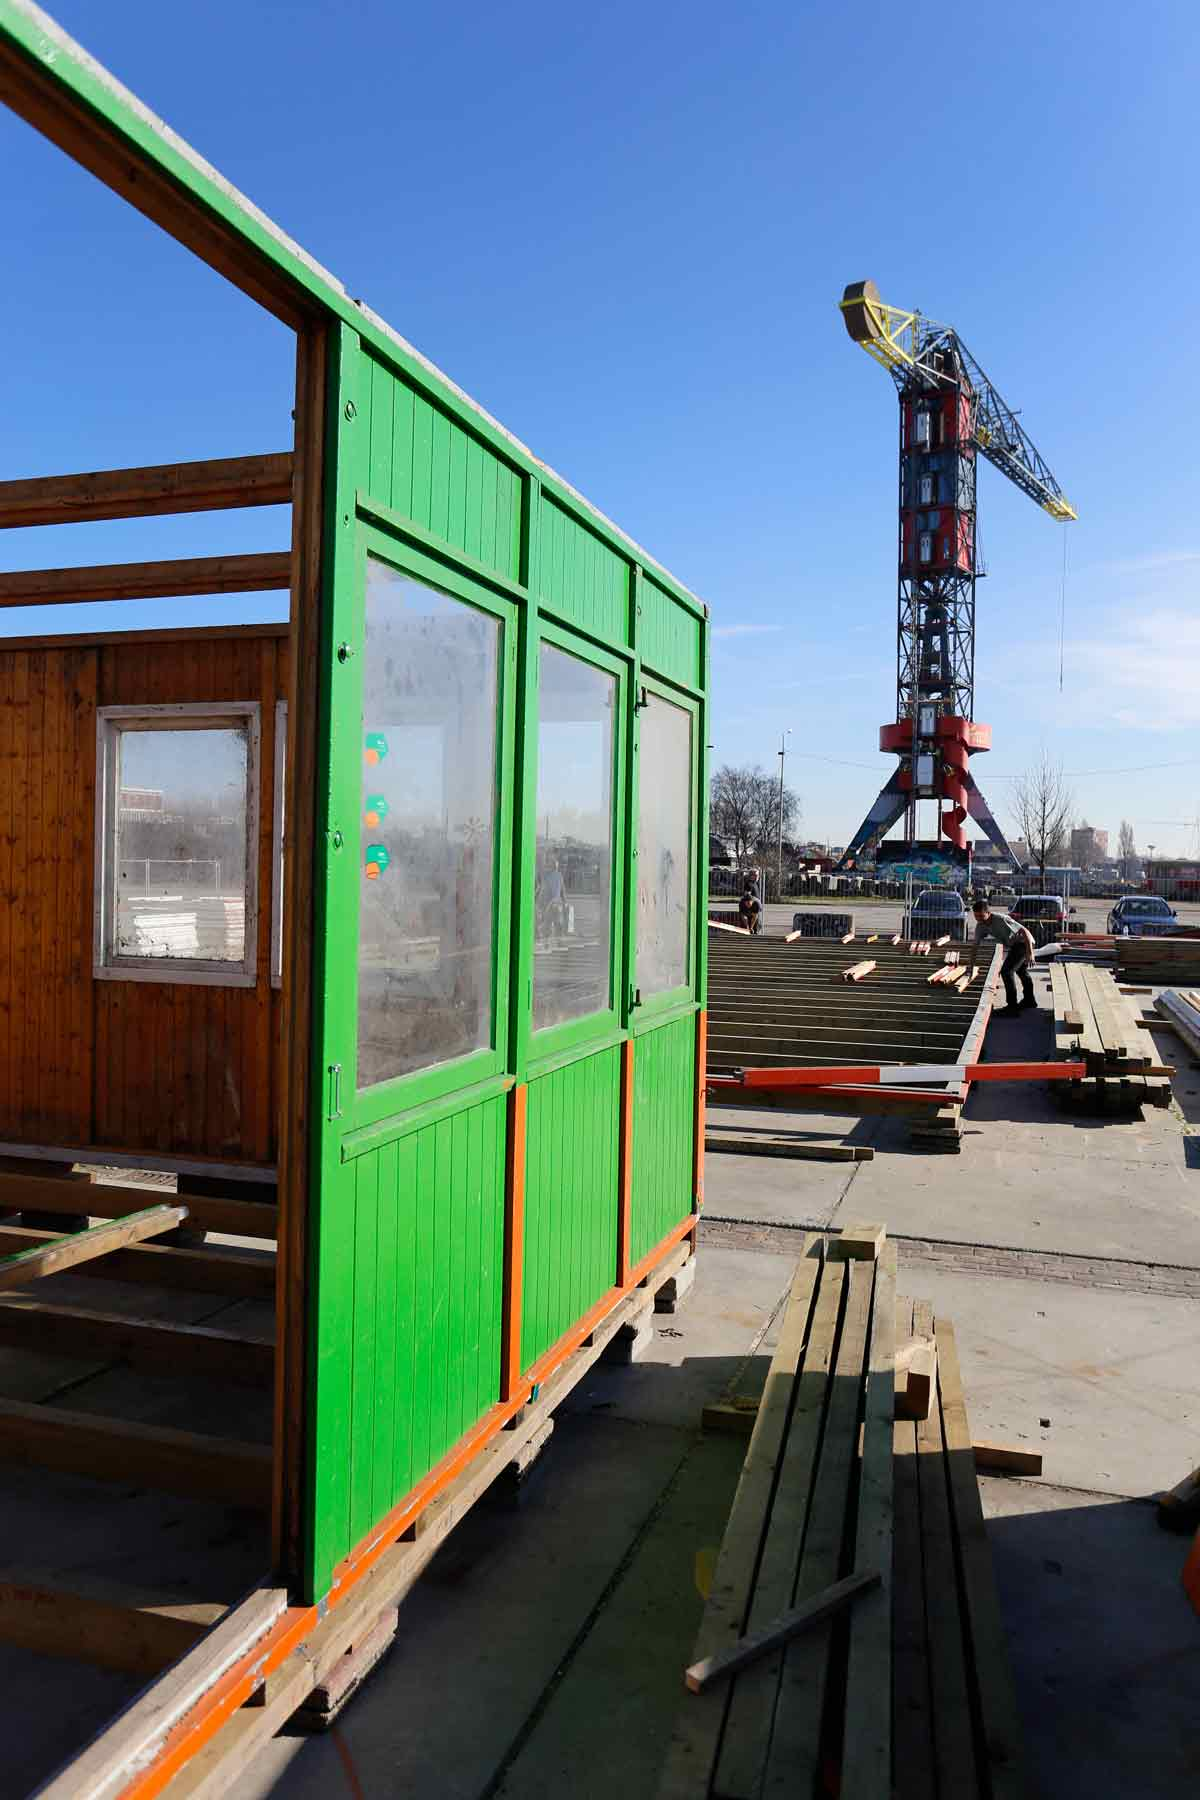 photograph of a green shack under construction to the left and the NDSM crane in the background by BETA architects Evert Klinkenberg Auguste Gus van Oppen